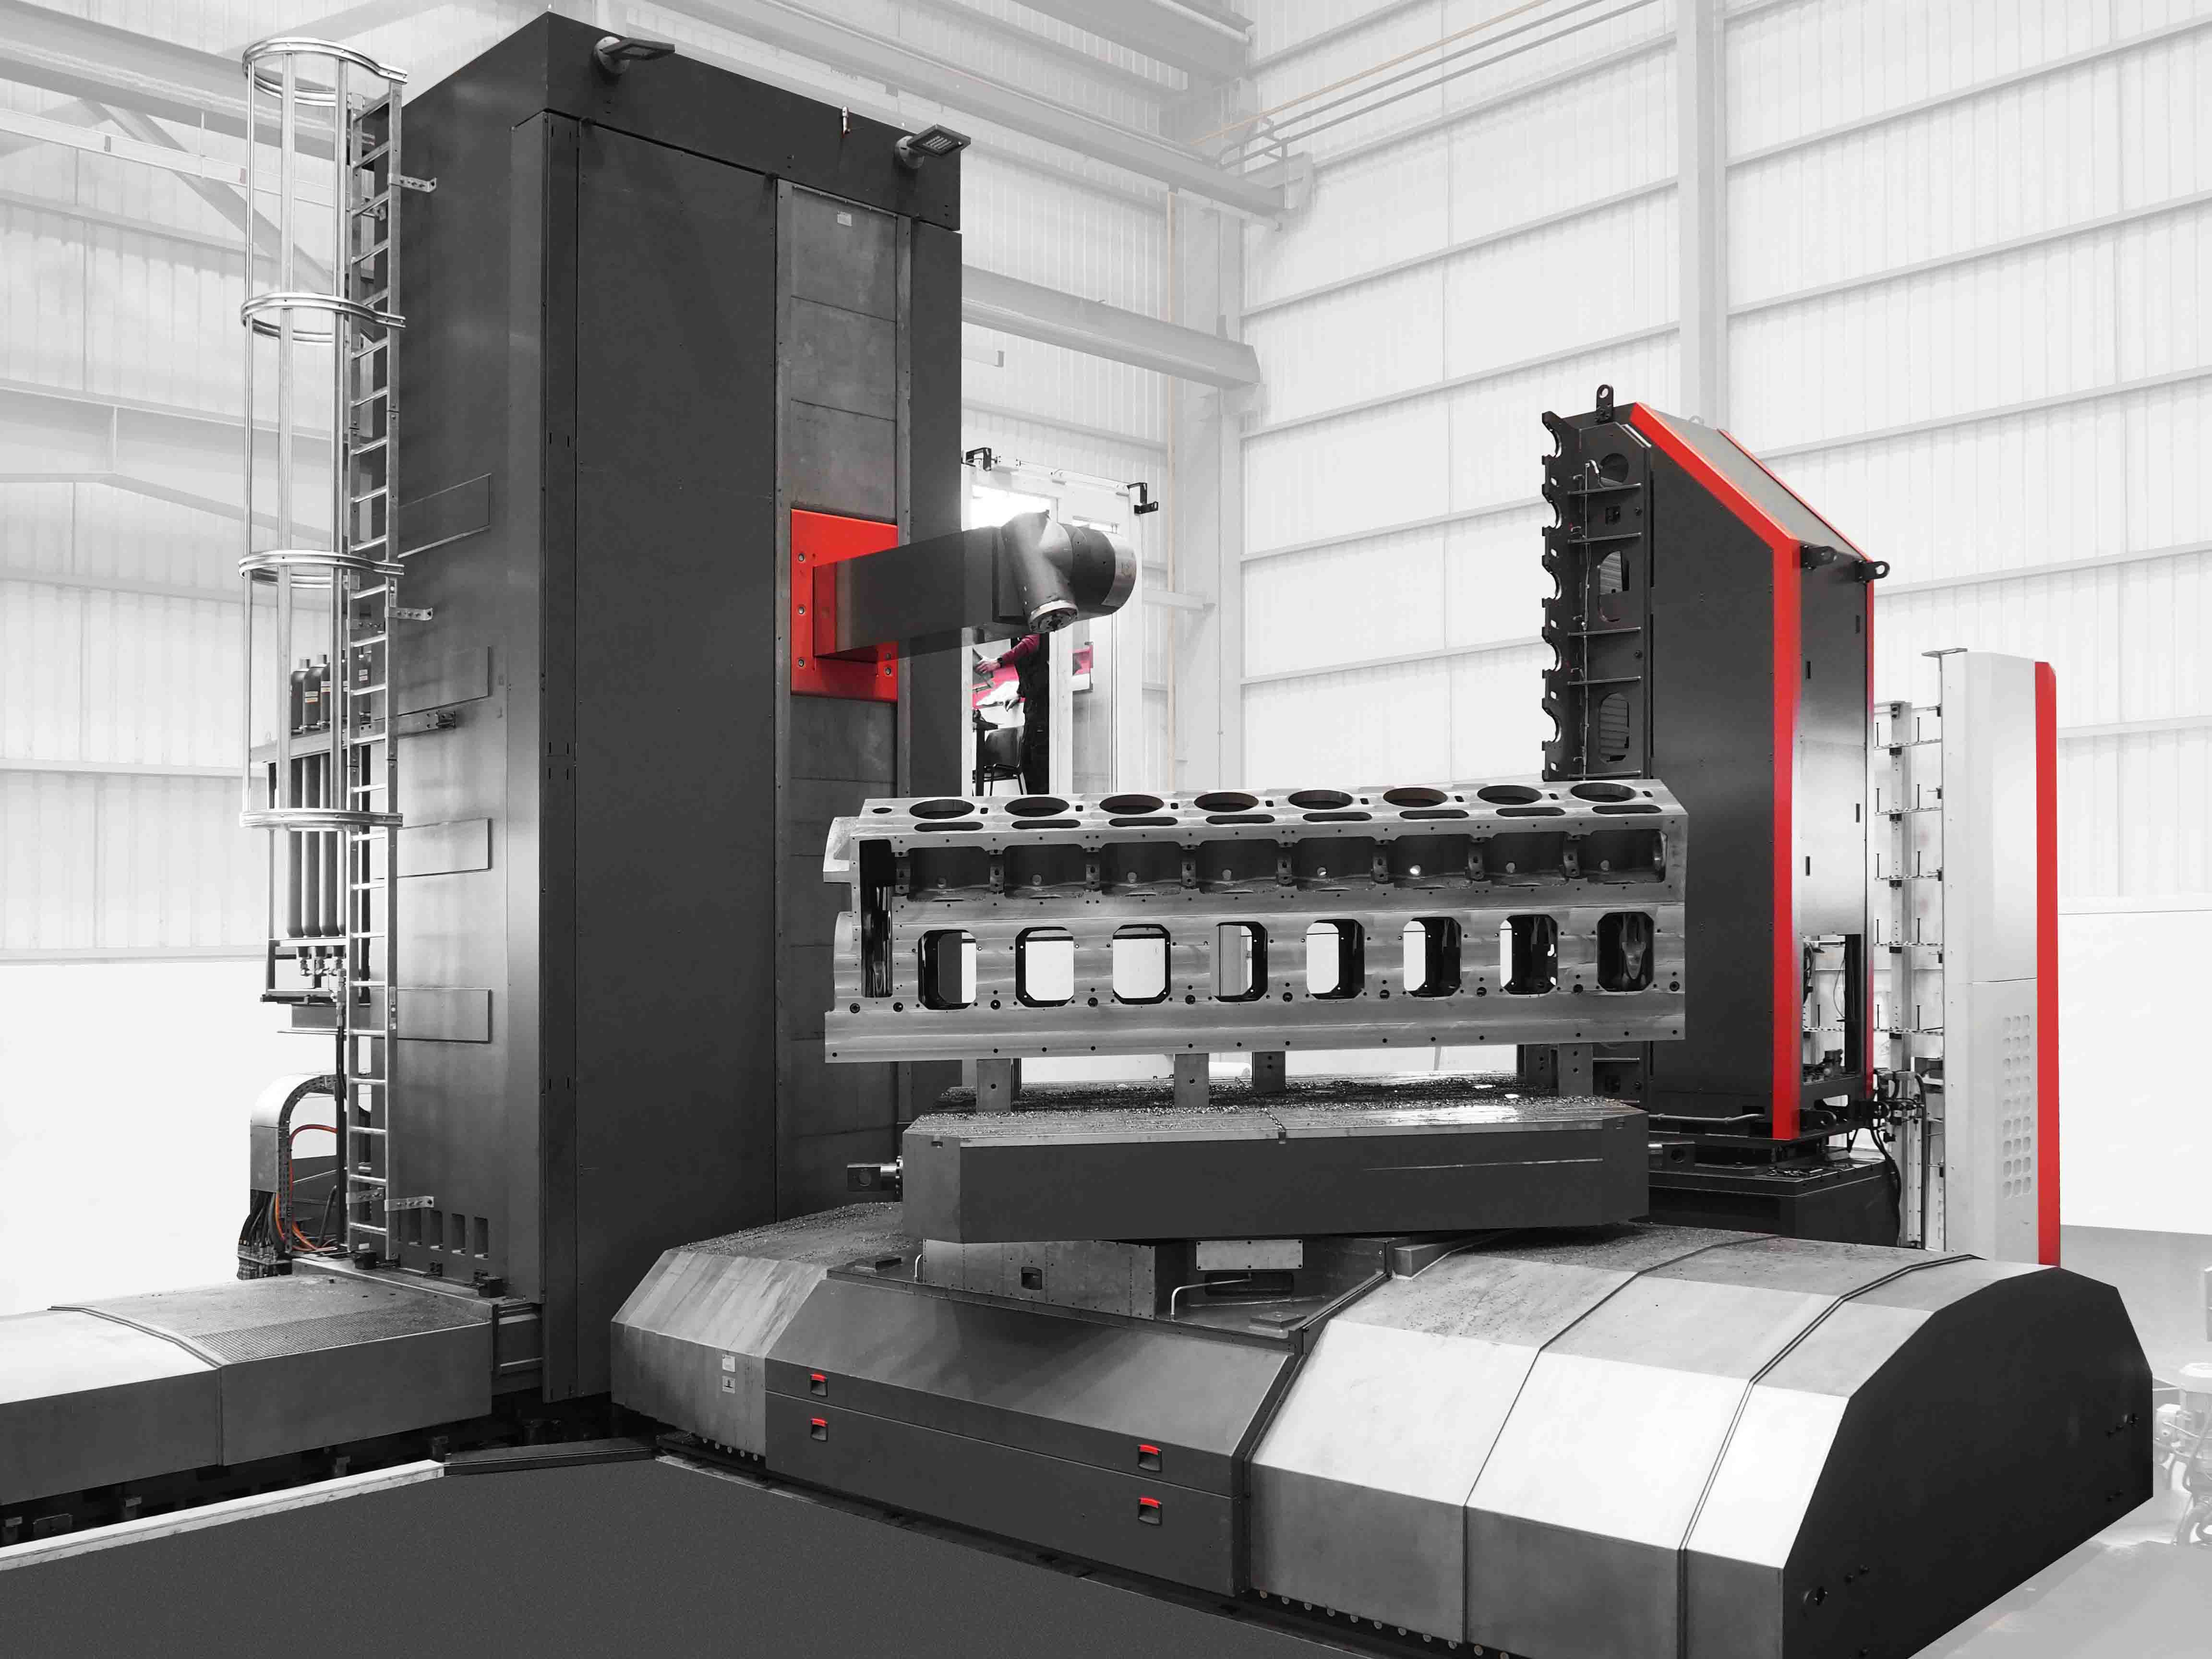 Precision floor type boring and milling machines MP-RAM SERIES - Hydrostatic Guided Boring Machine